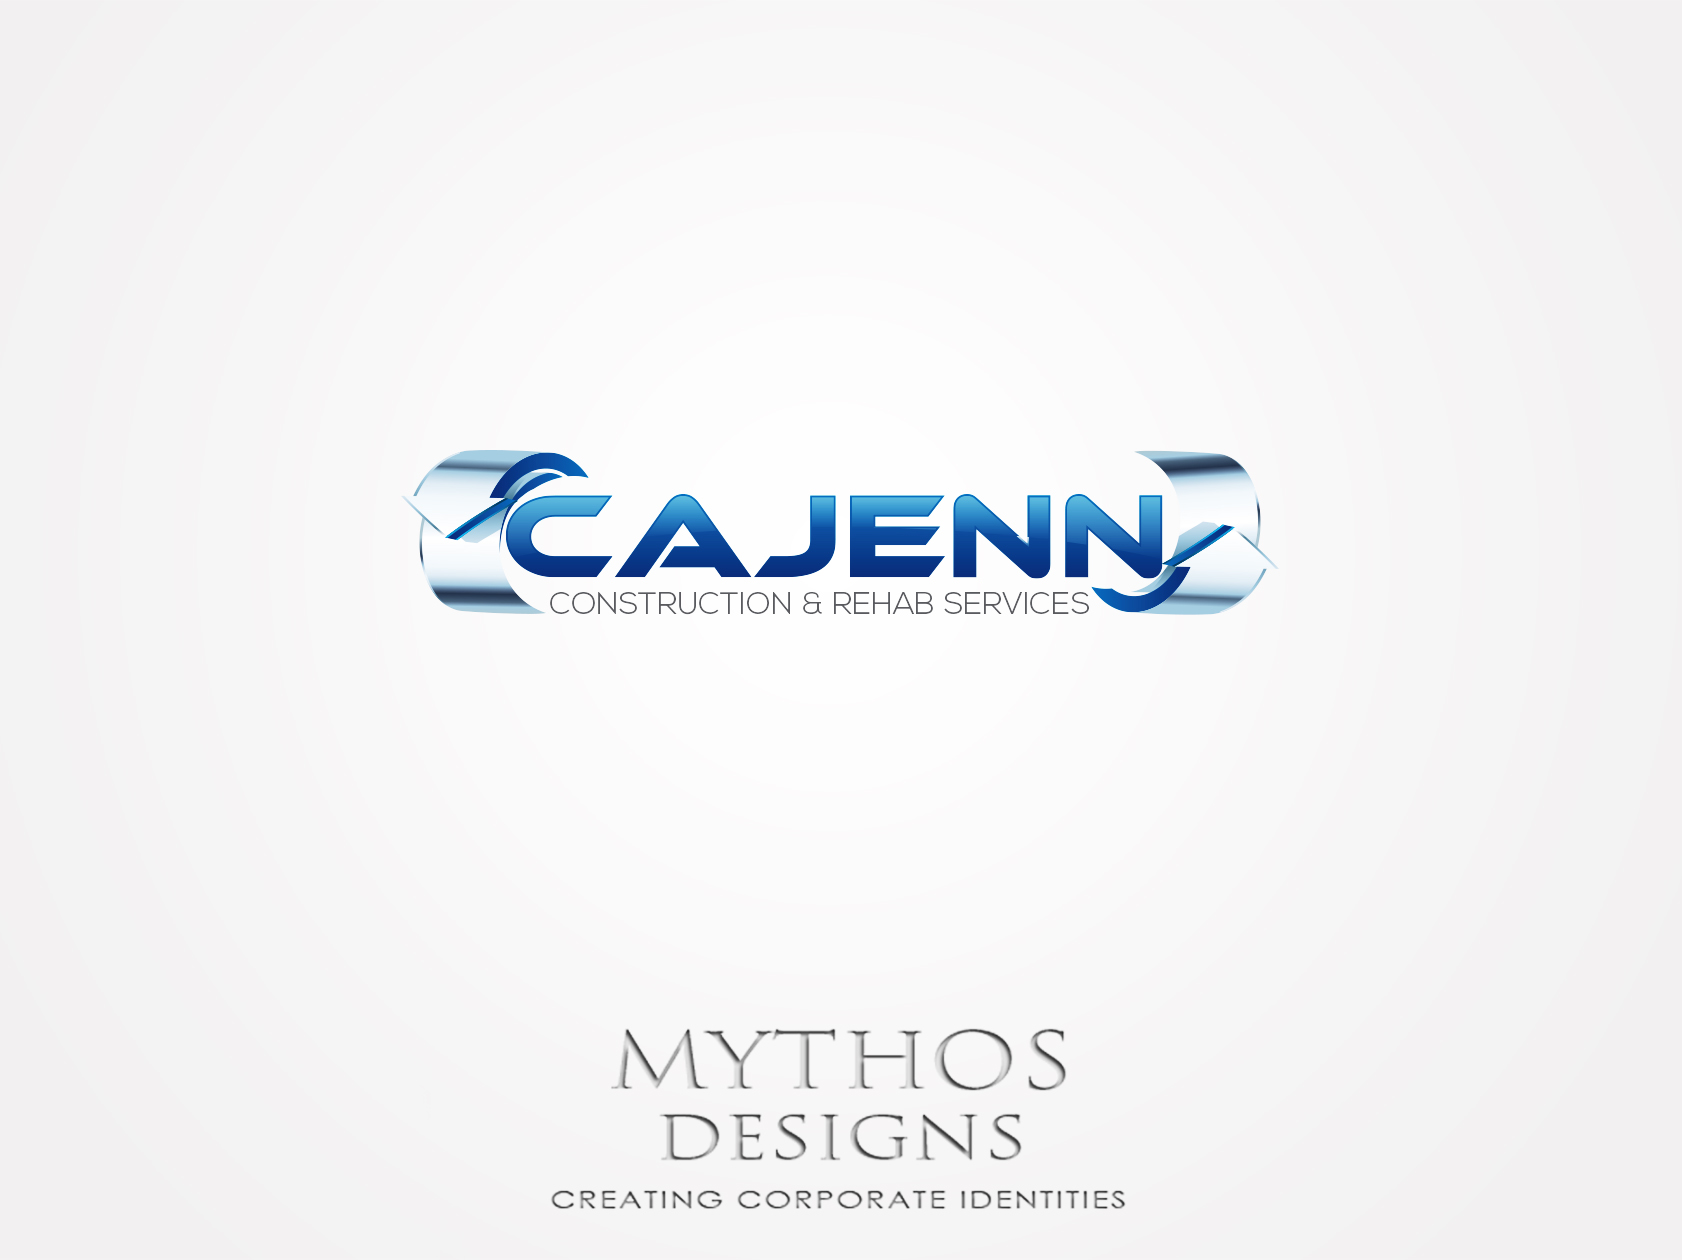 Logo Design by Mythos Designs - Entry No. 315 in the Logo Design Contest New Logo Design for CaJenn Construction & Rehab Services.